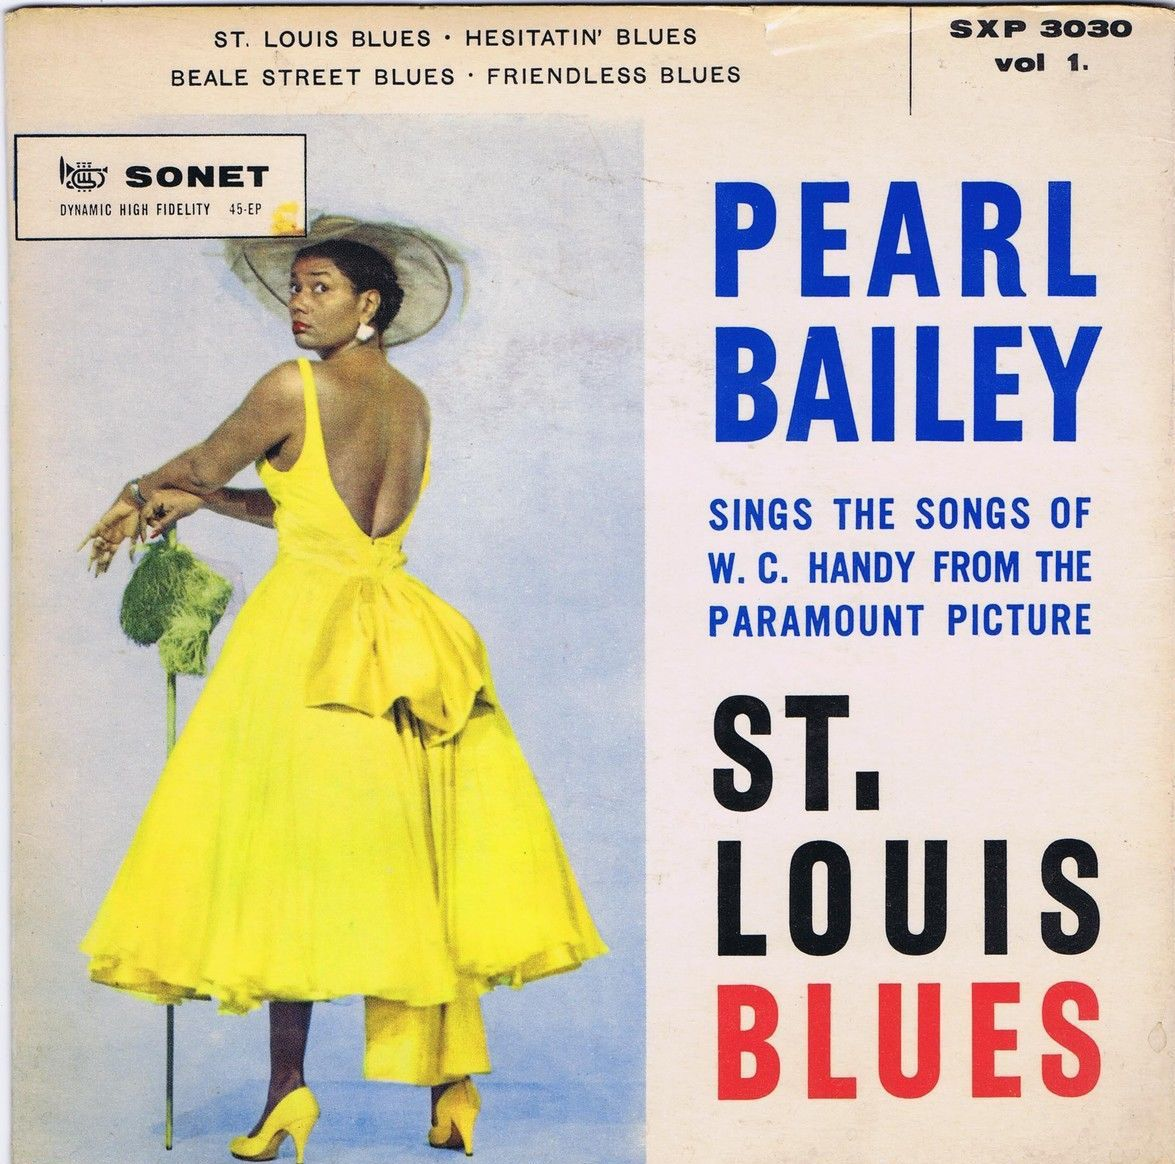 Pearl bailey st louis blues vol danish ep ps sonet album